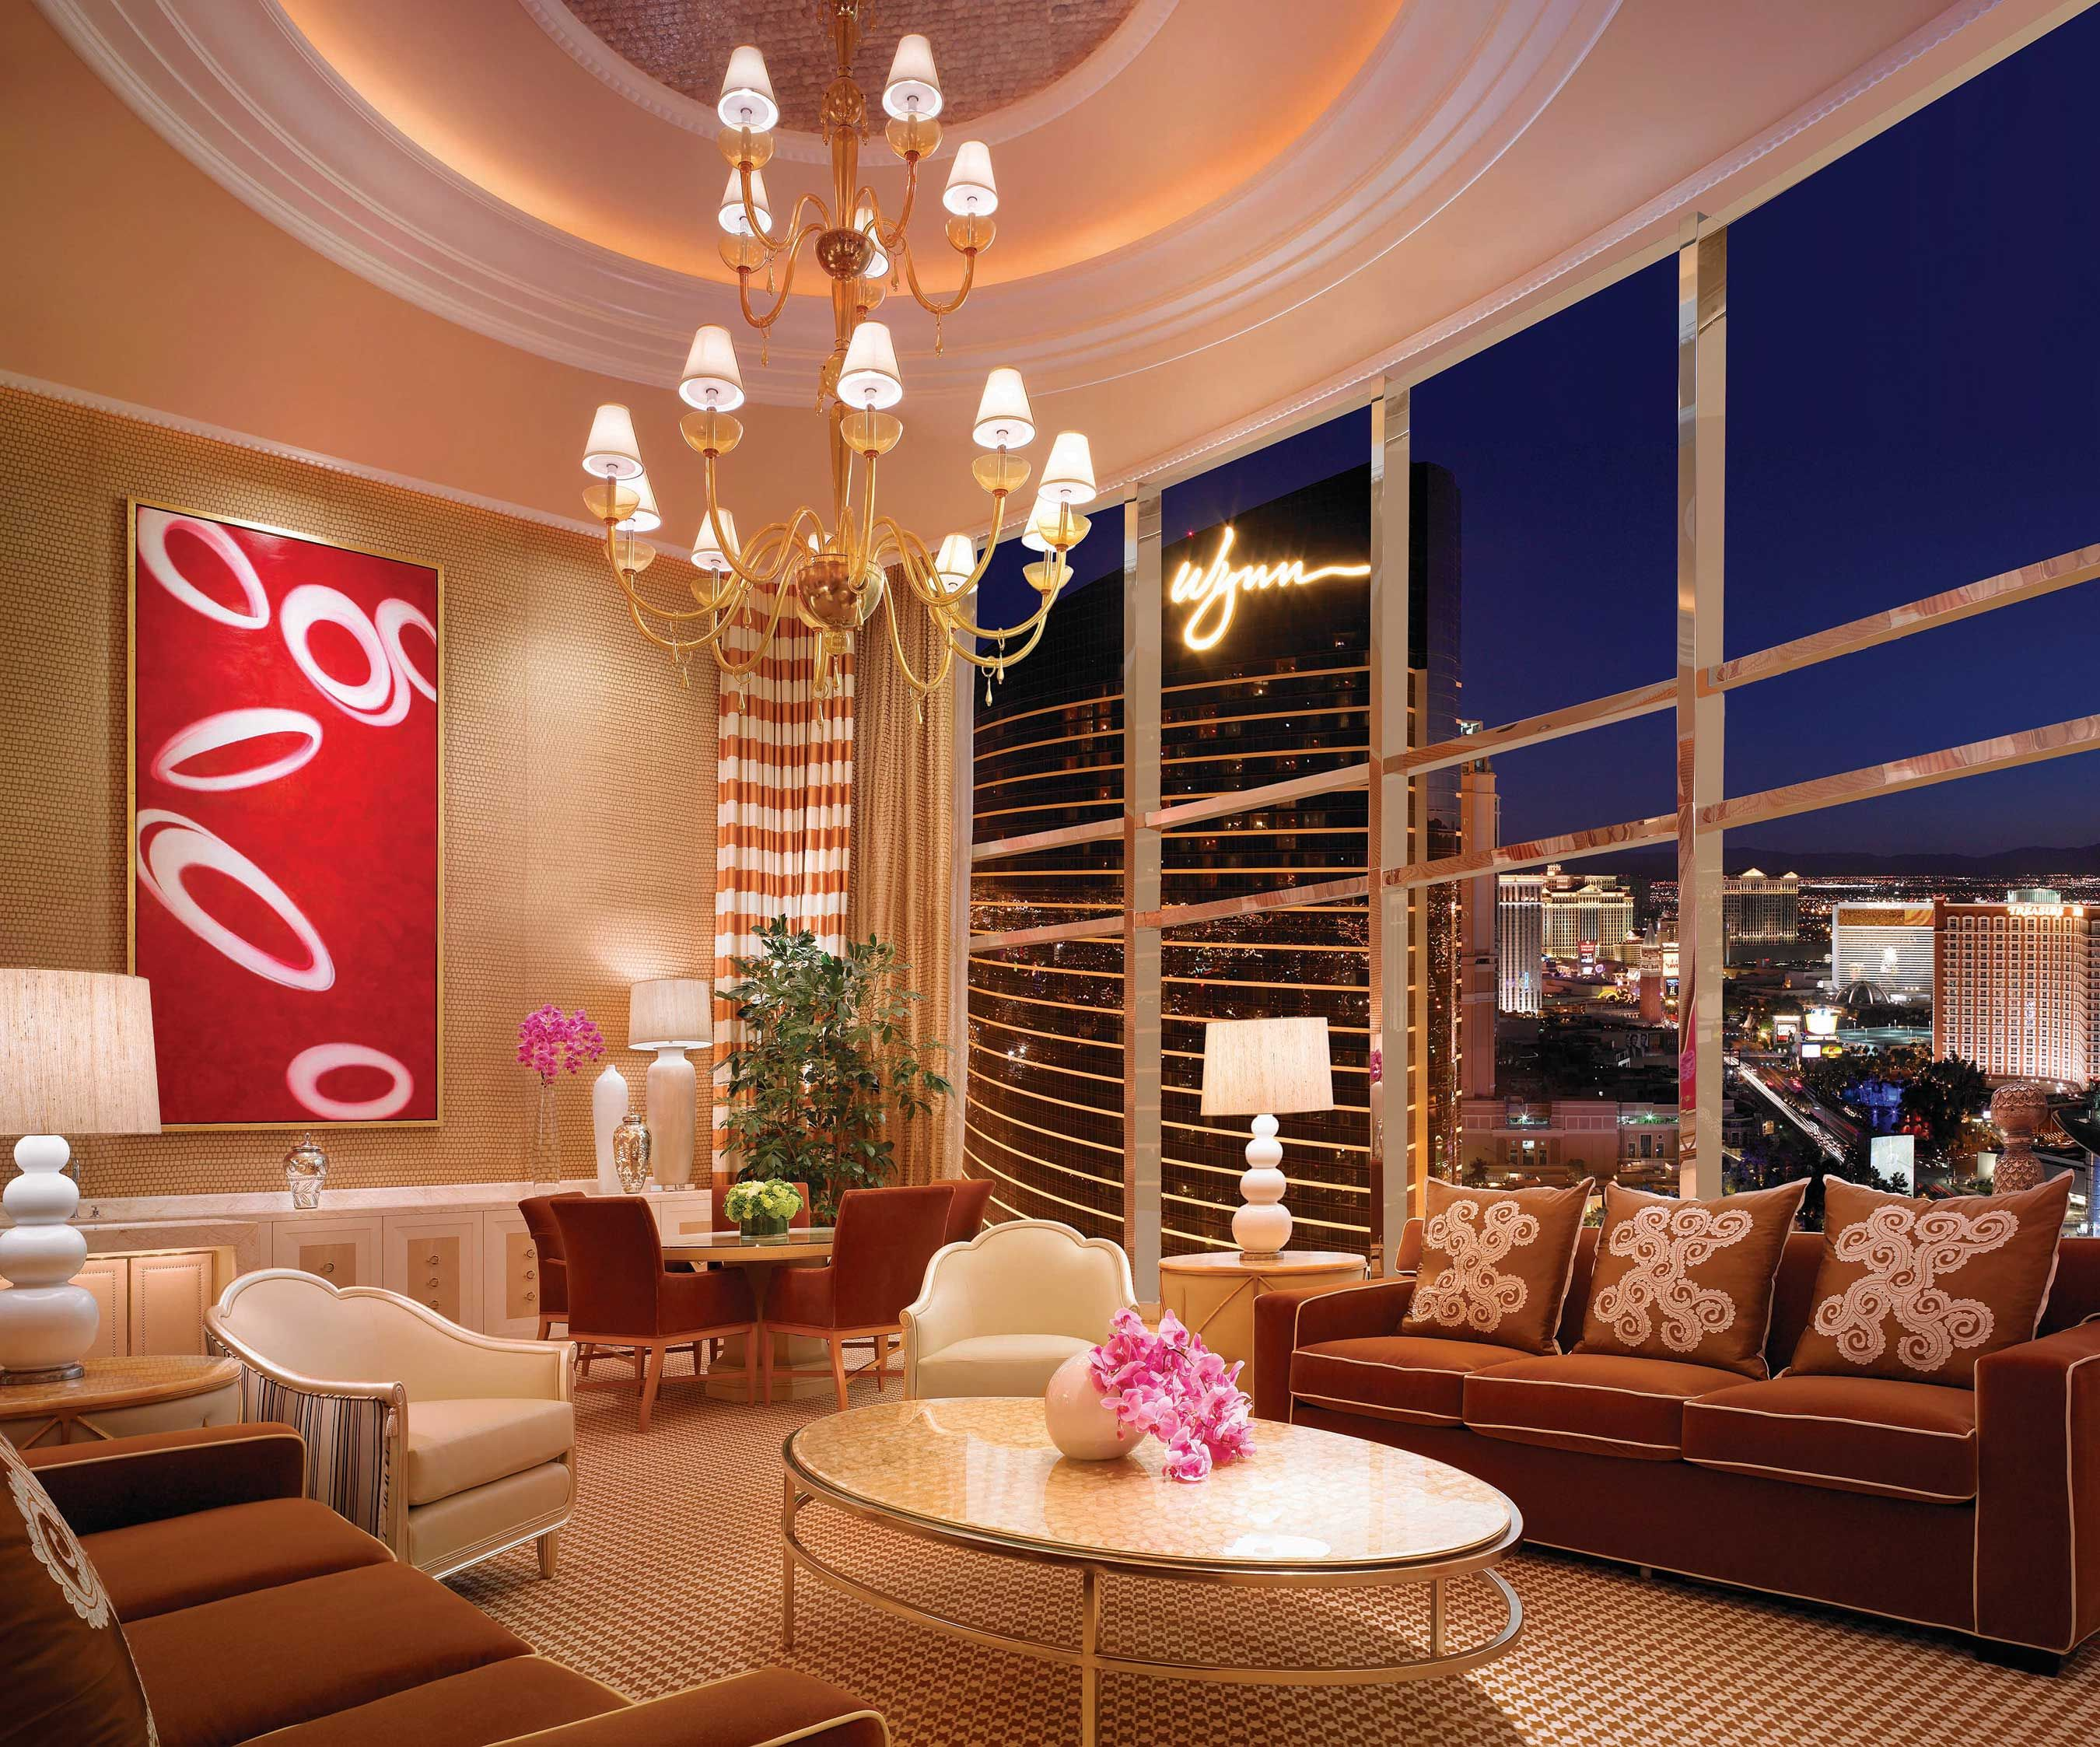 We are big fans of Wynn LasVegas. What's not to love? We